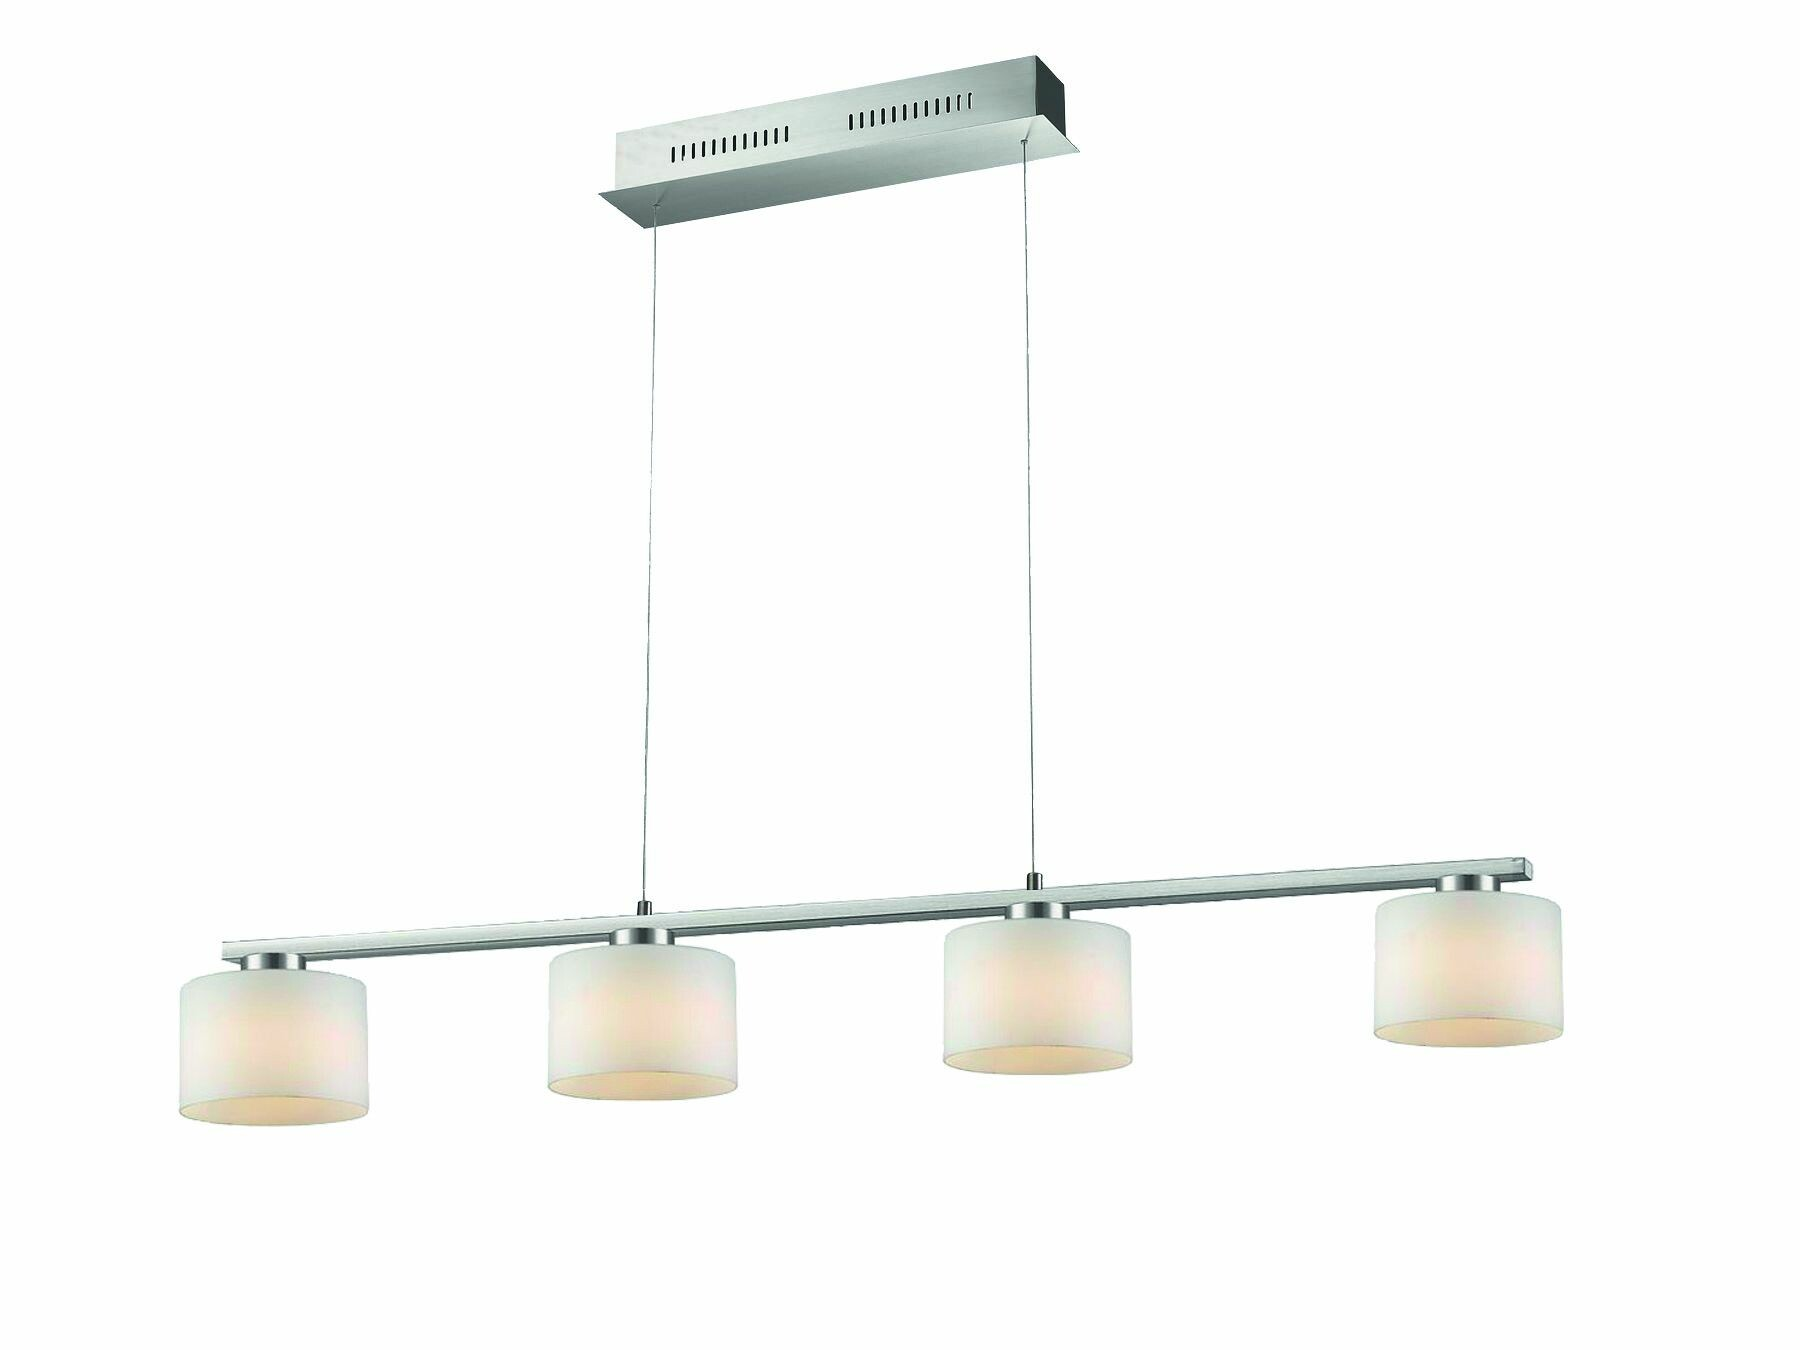 LEO Hanglamp LED 4x60W/630lm Zilver